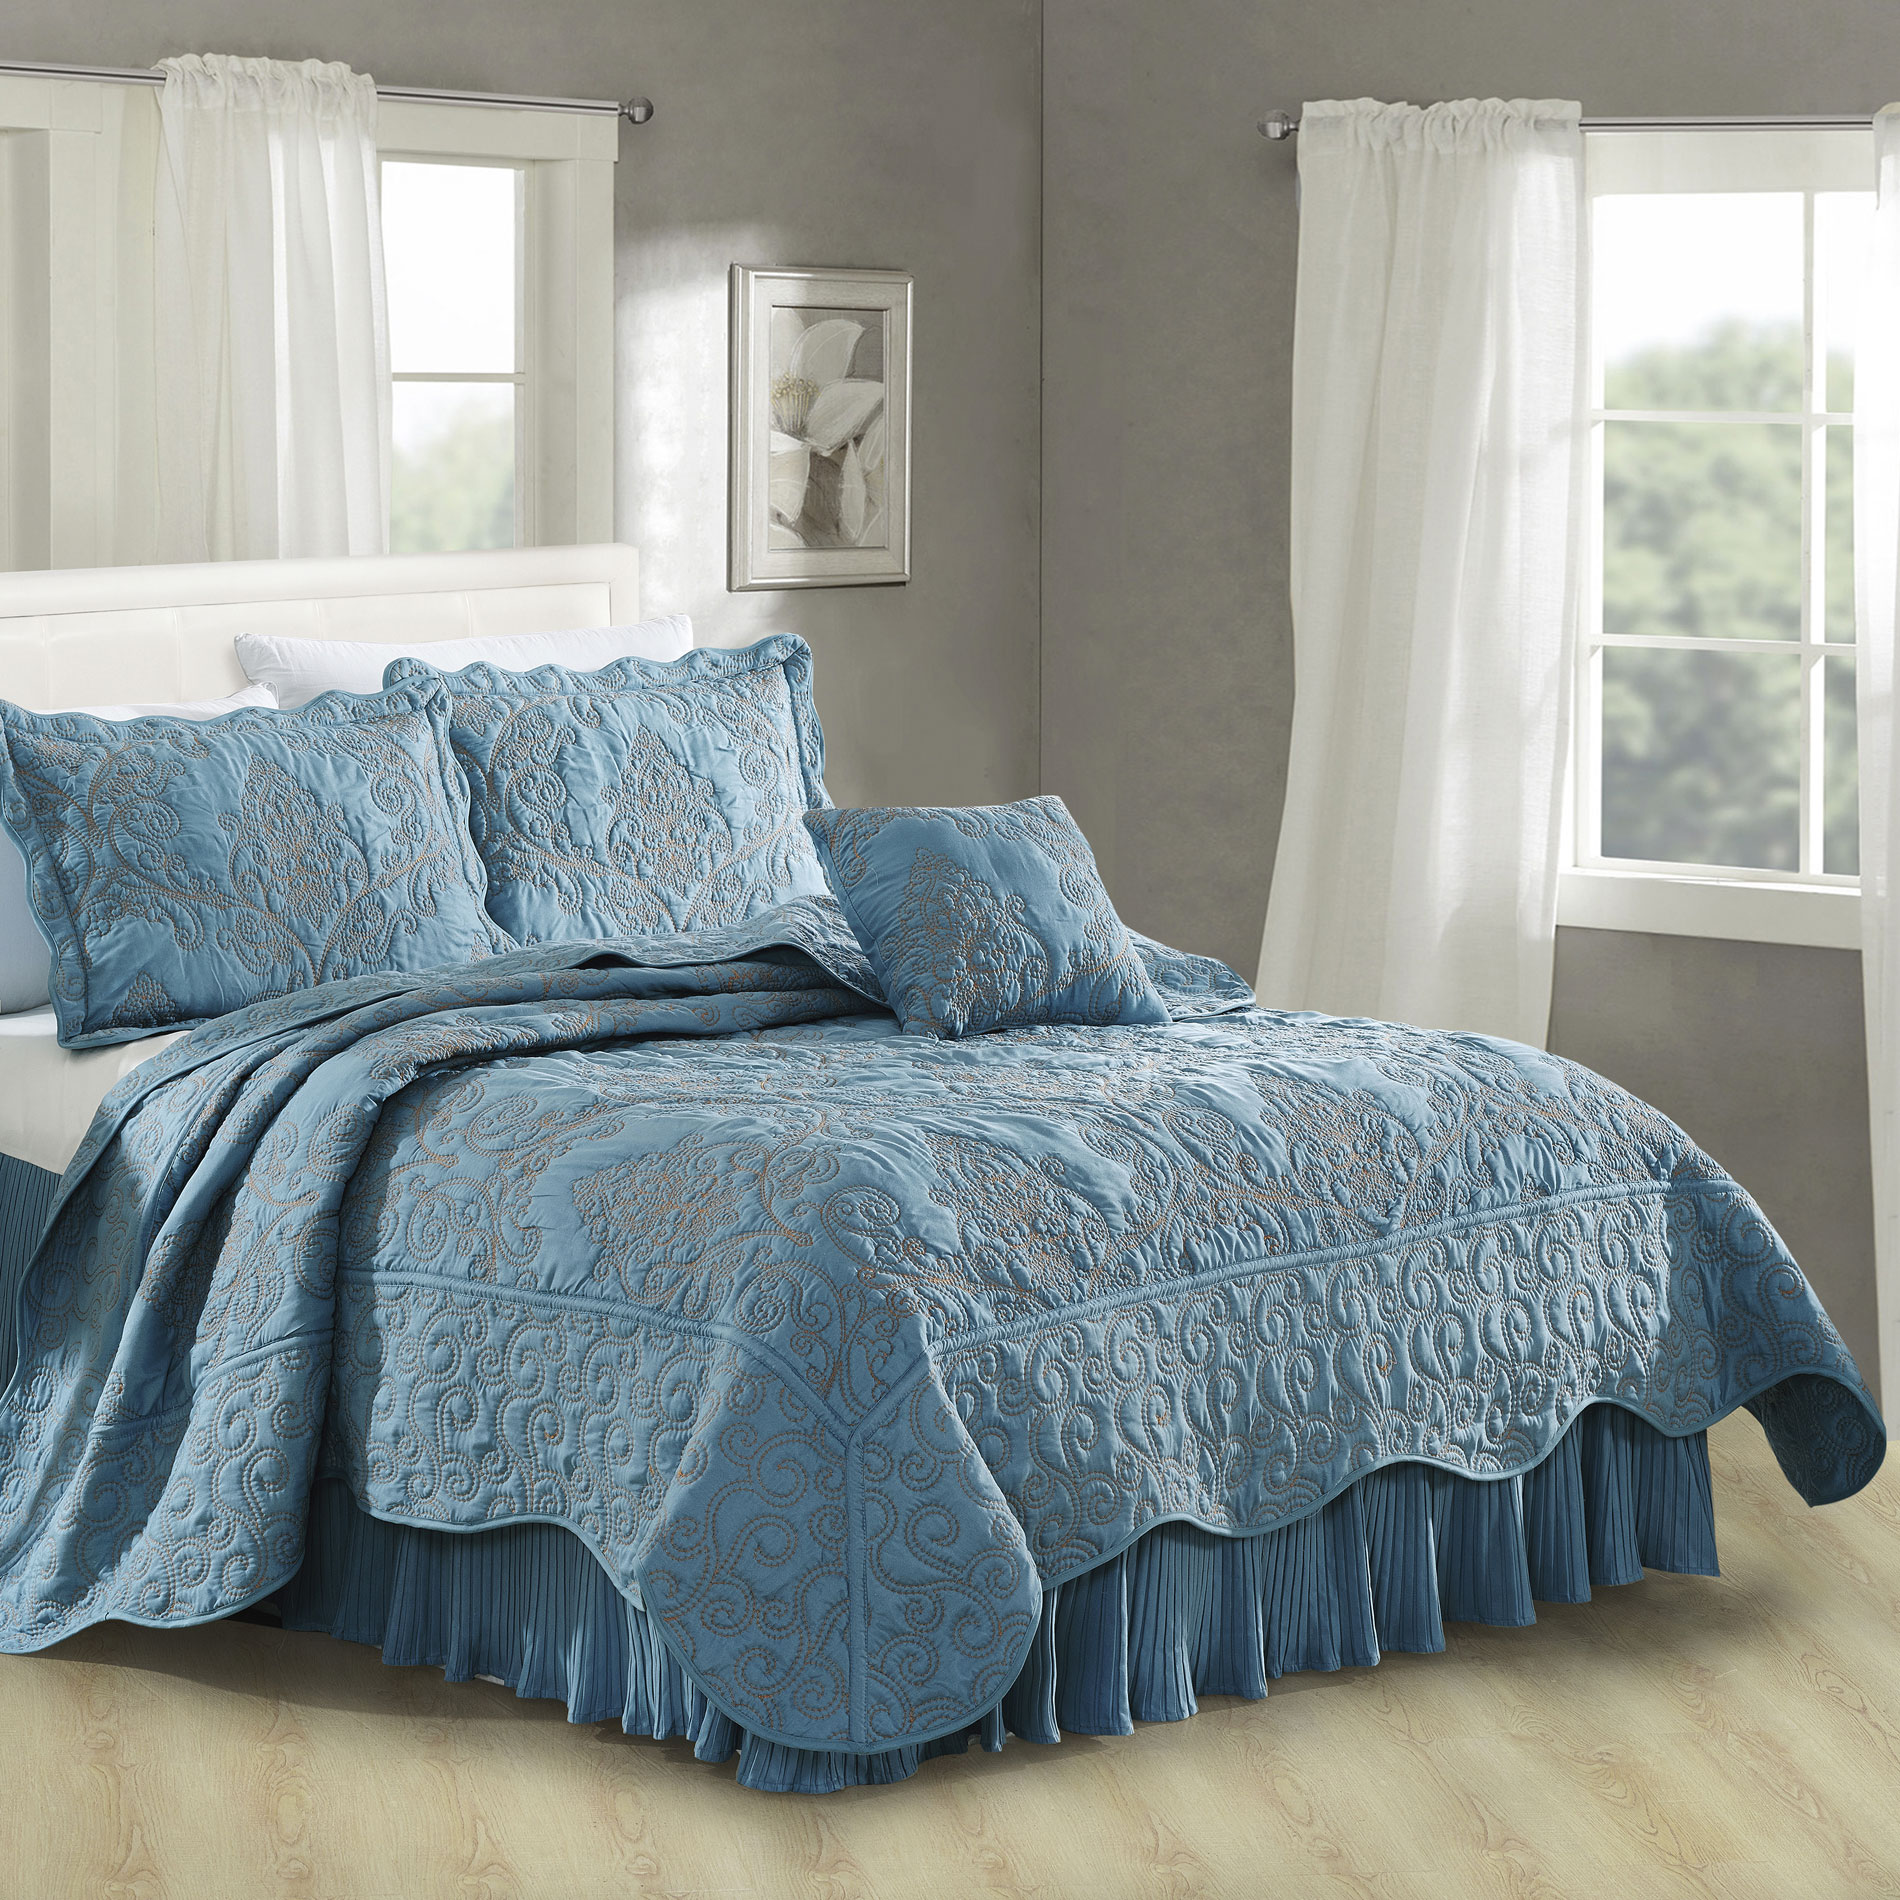 Serenta Damask Embroidered 4 Piece Quilt Bedspread Set